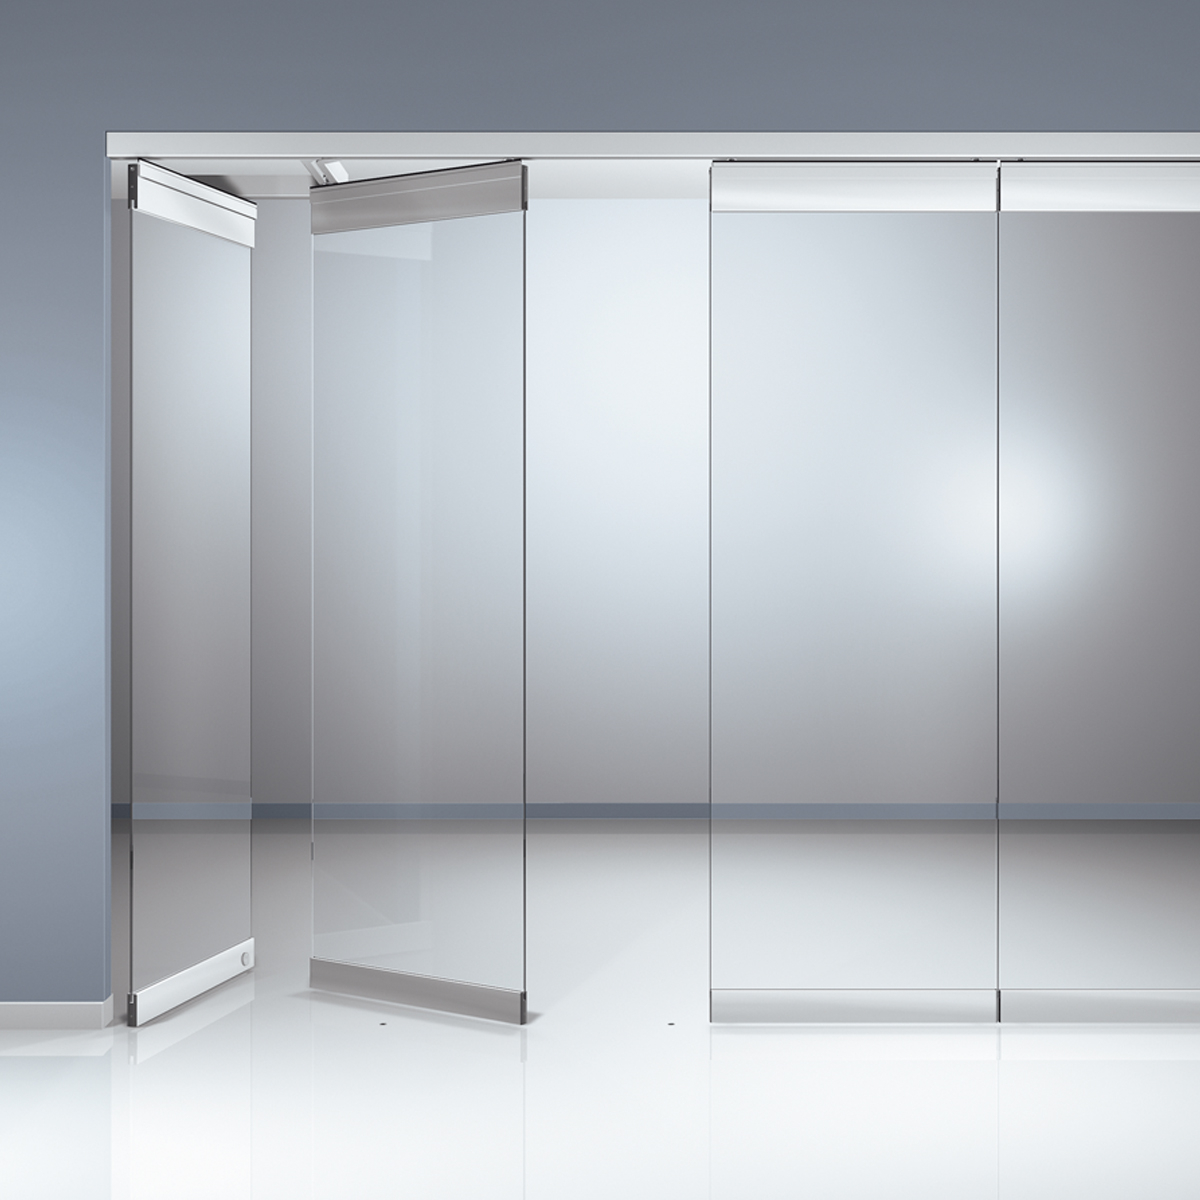 Glass Partitions All Purpose Glazing Movable Walls Glass Partition Sliding Wall